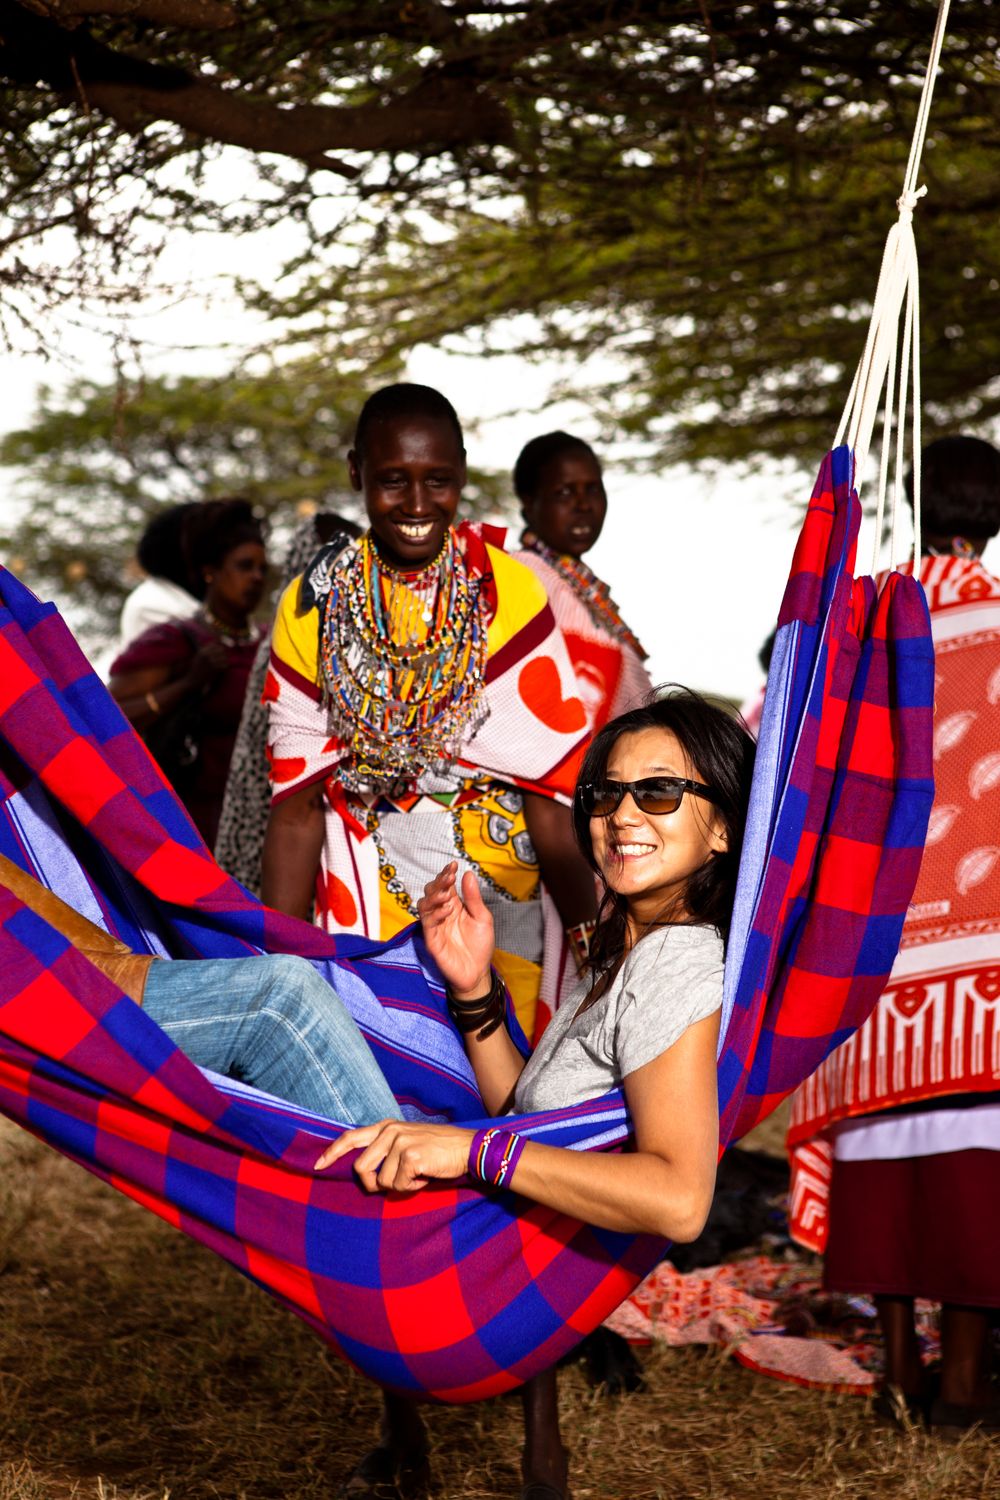 Hanging with the Masai in Kenya  Photography  Ryan Scheer